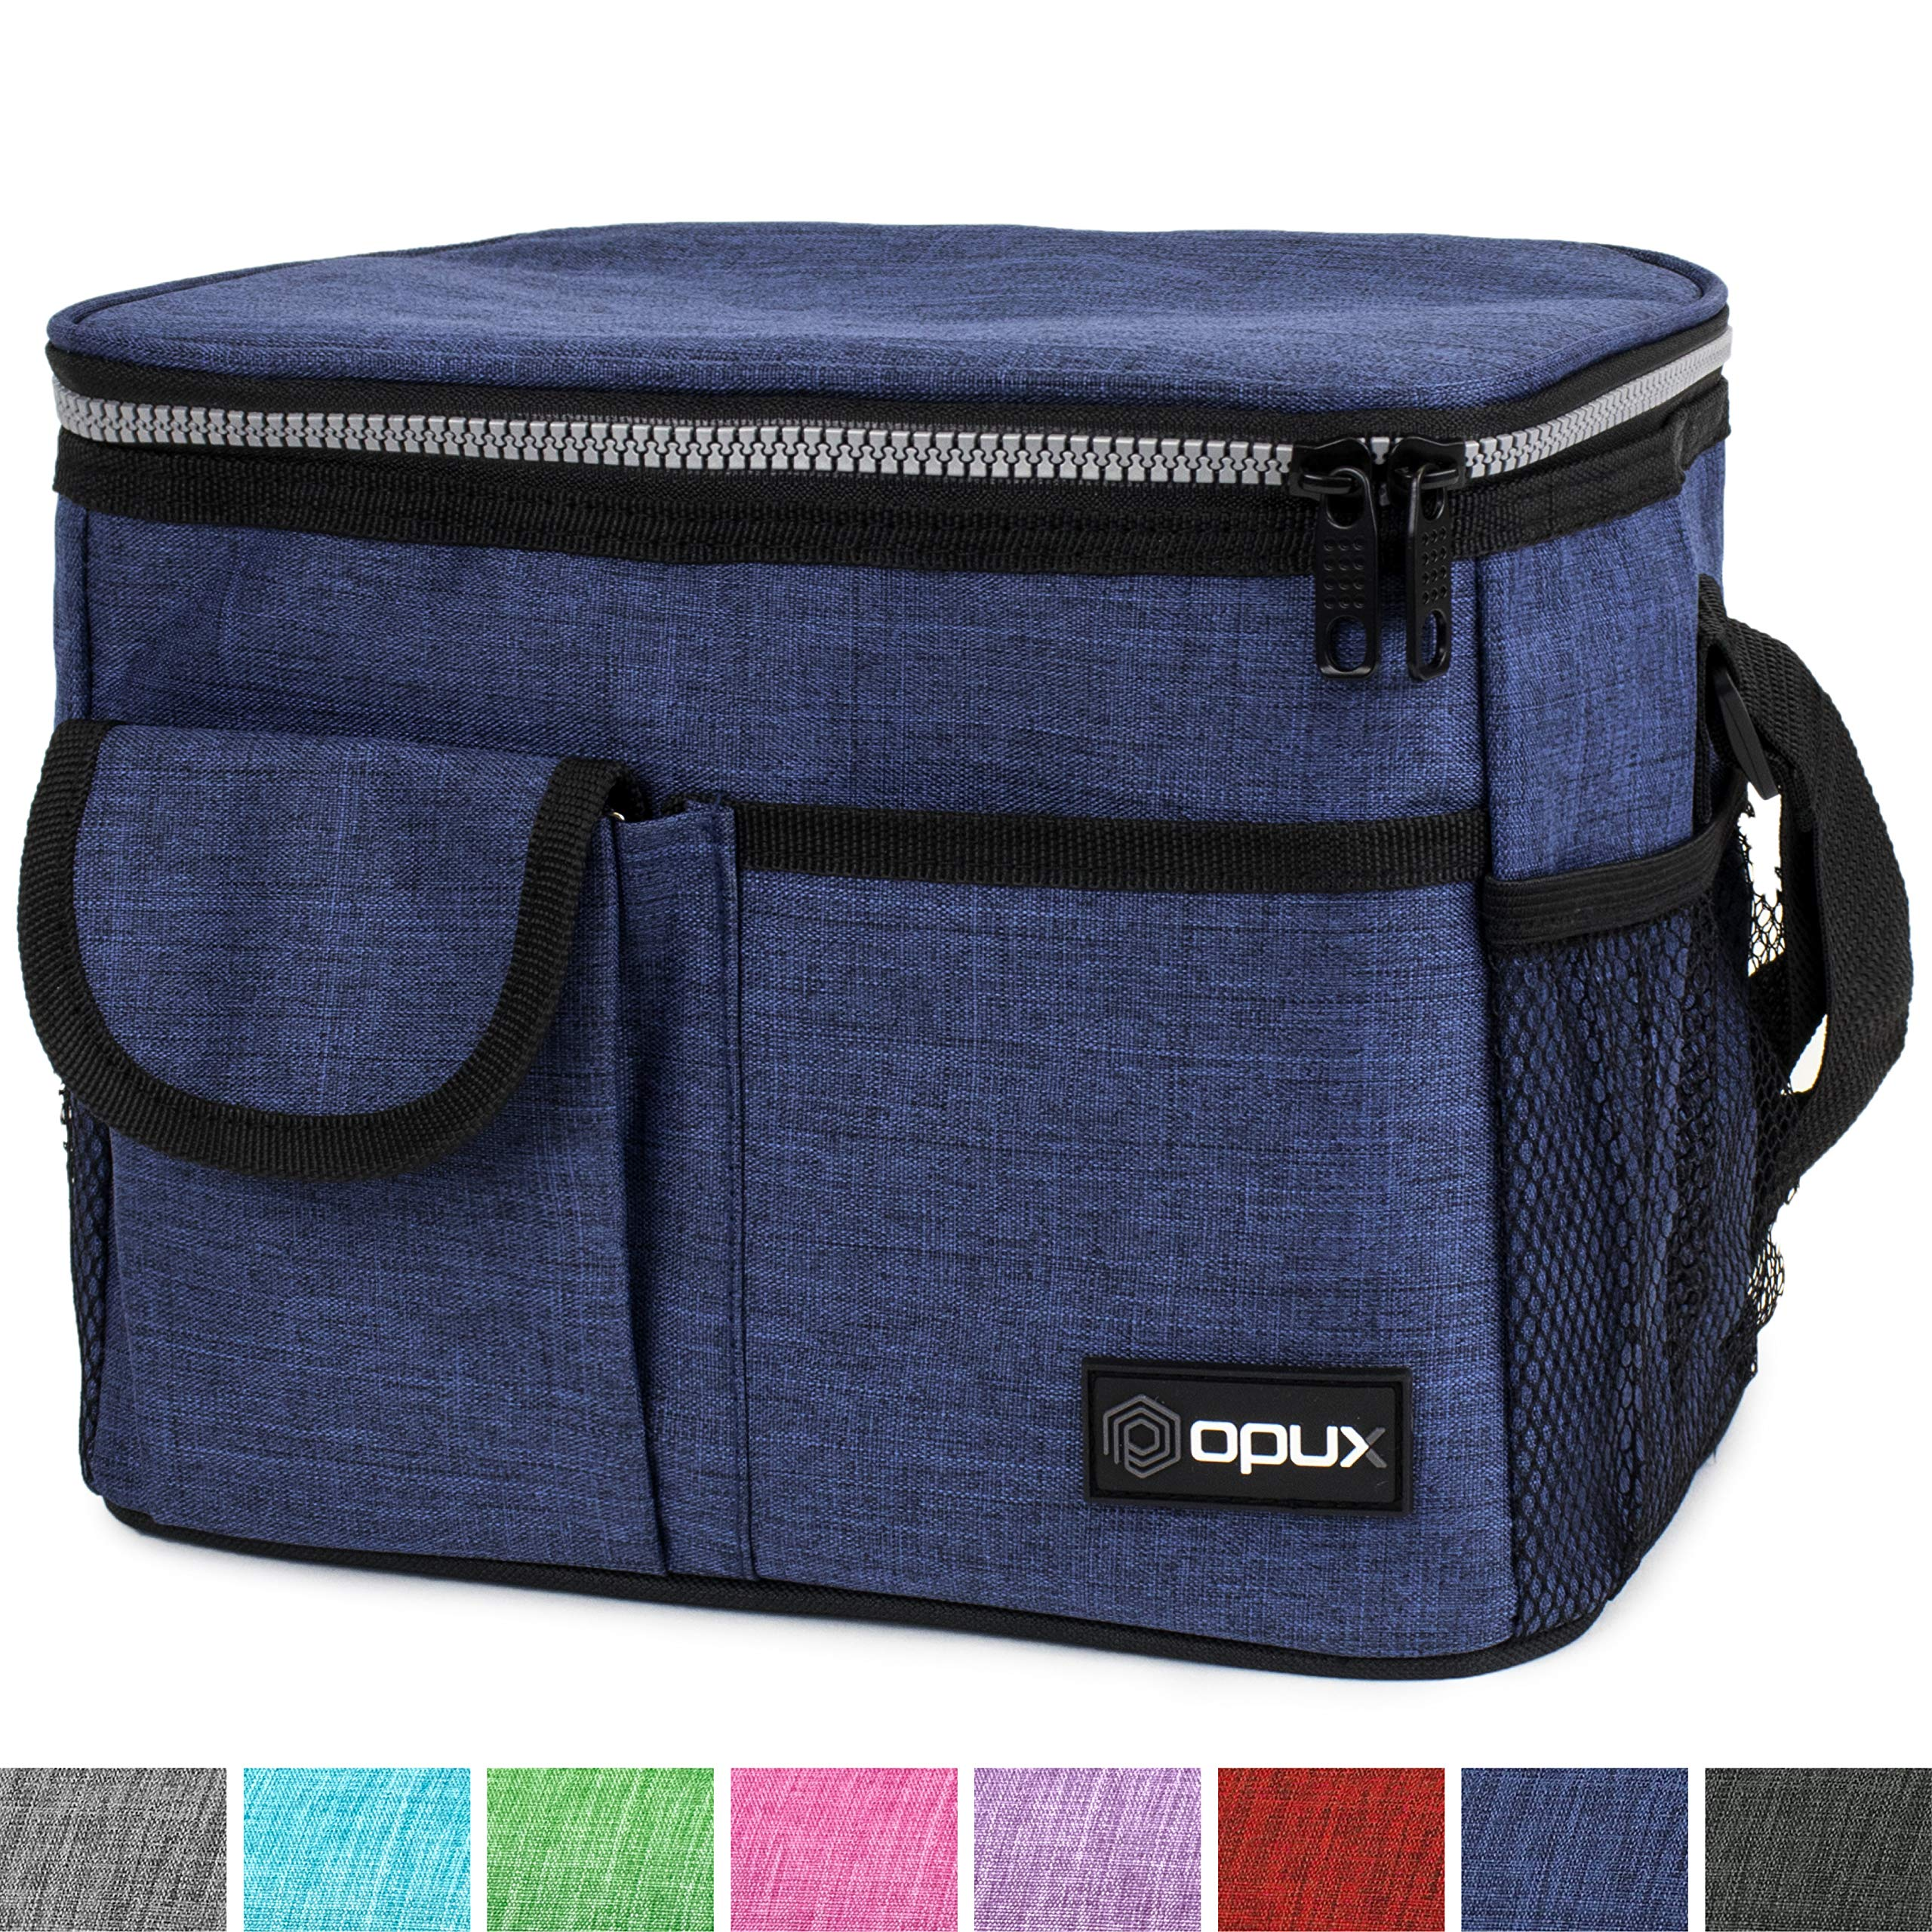 OPUX Premium Insulated Lunch Bag with Shoulder Strap | Lunch Box for Men, Women, Kids | Soft Leakproof Liner with Pockets | Medium Lunch Cooler for School, Work | Fits 6 Cans (Heather Navy)